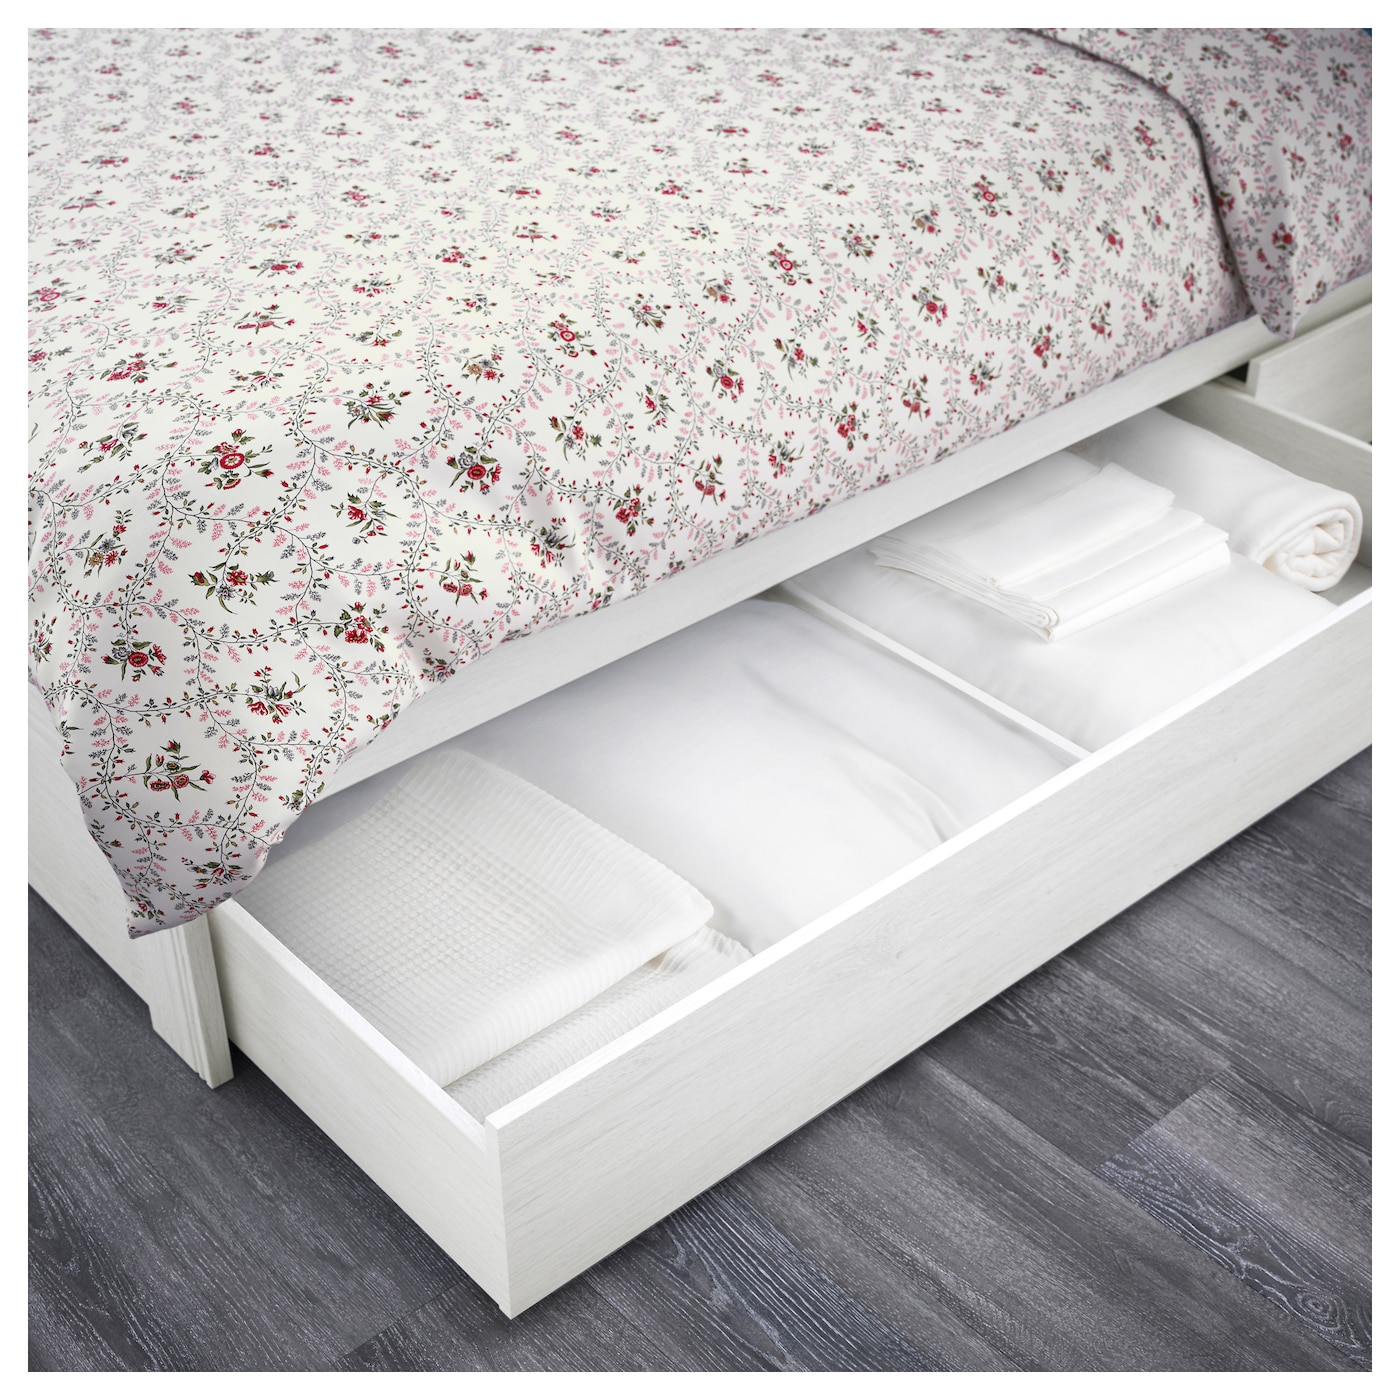 IKEA BRUSALI bed frame with 4 storage boxes